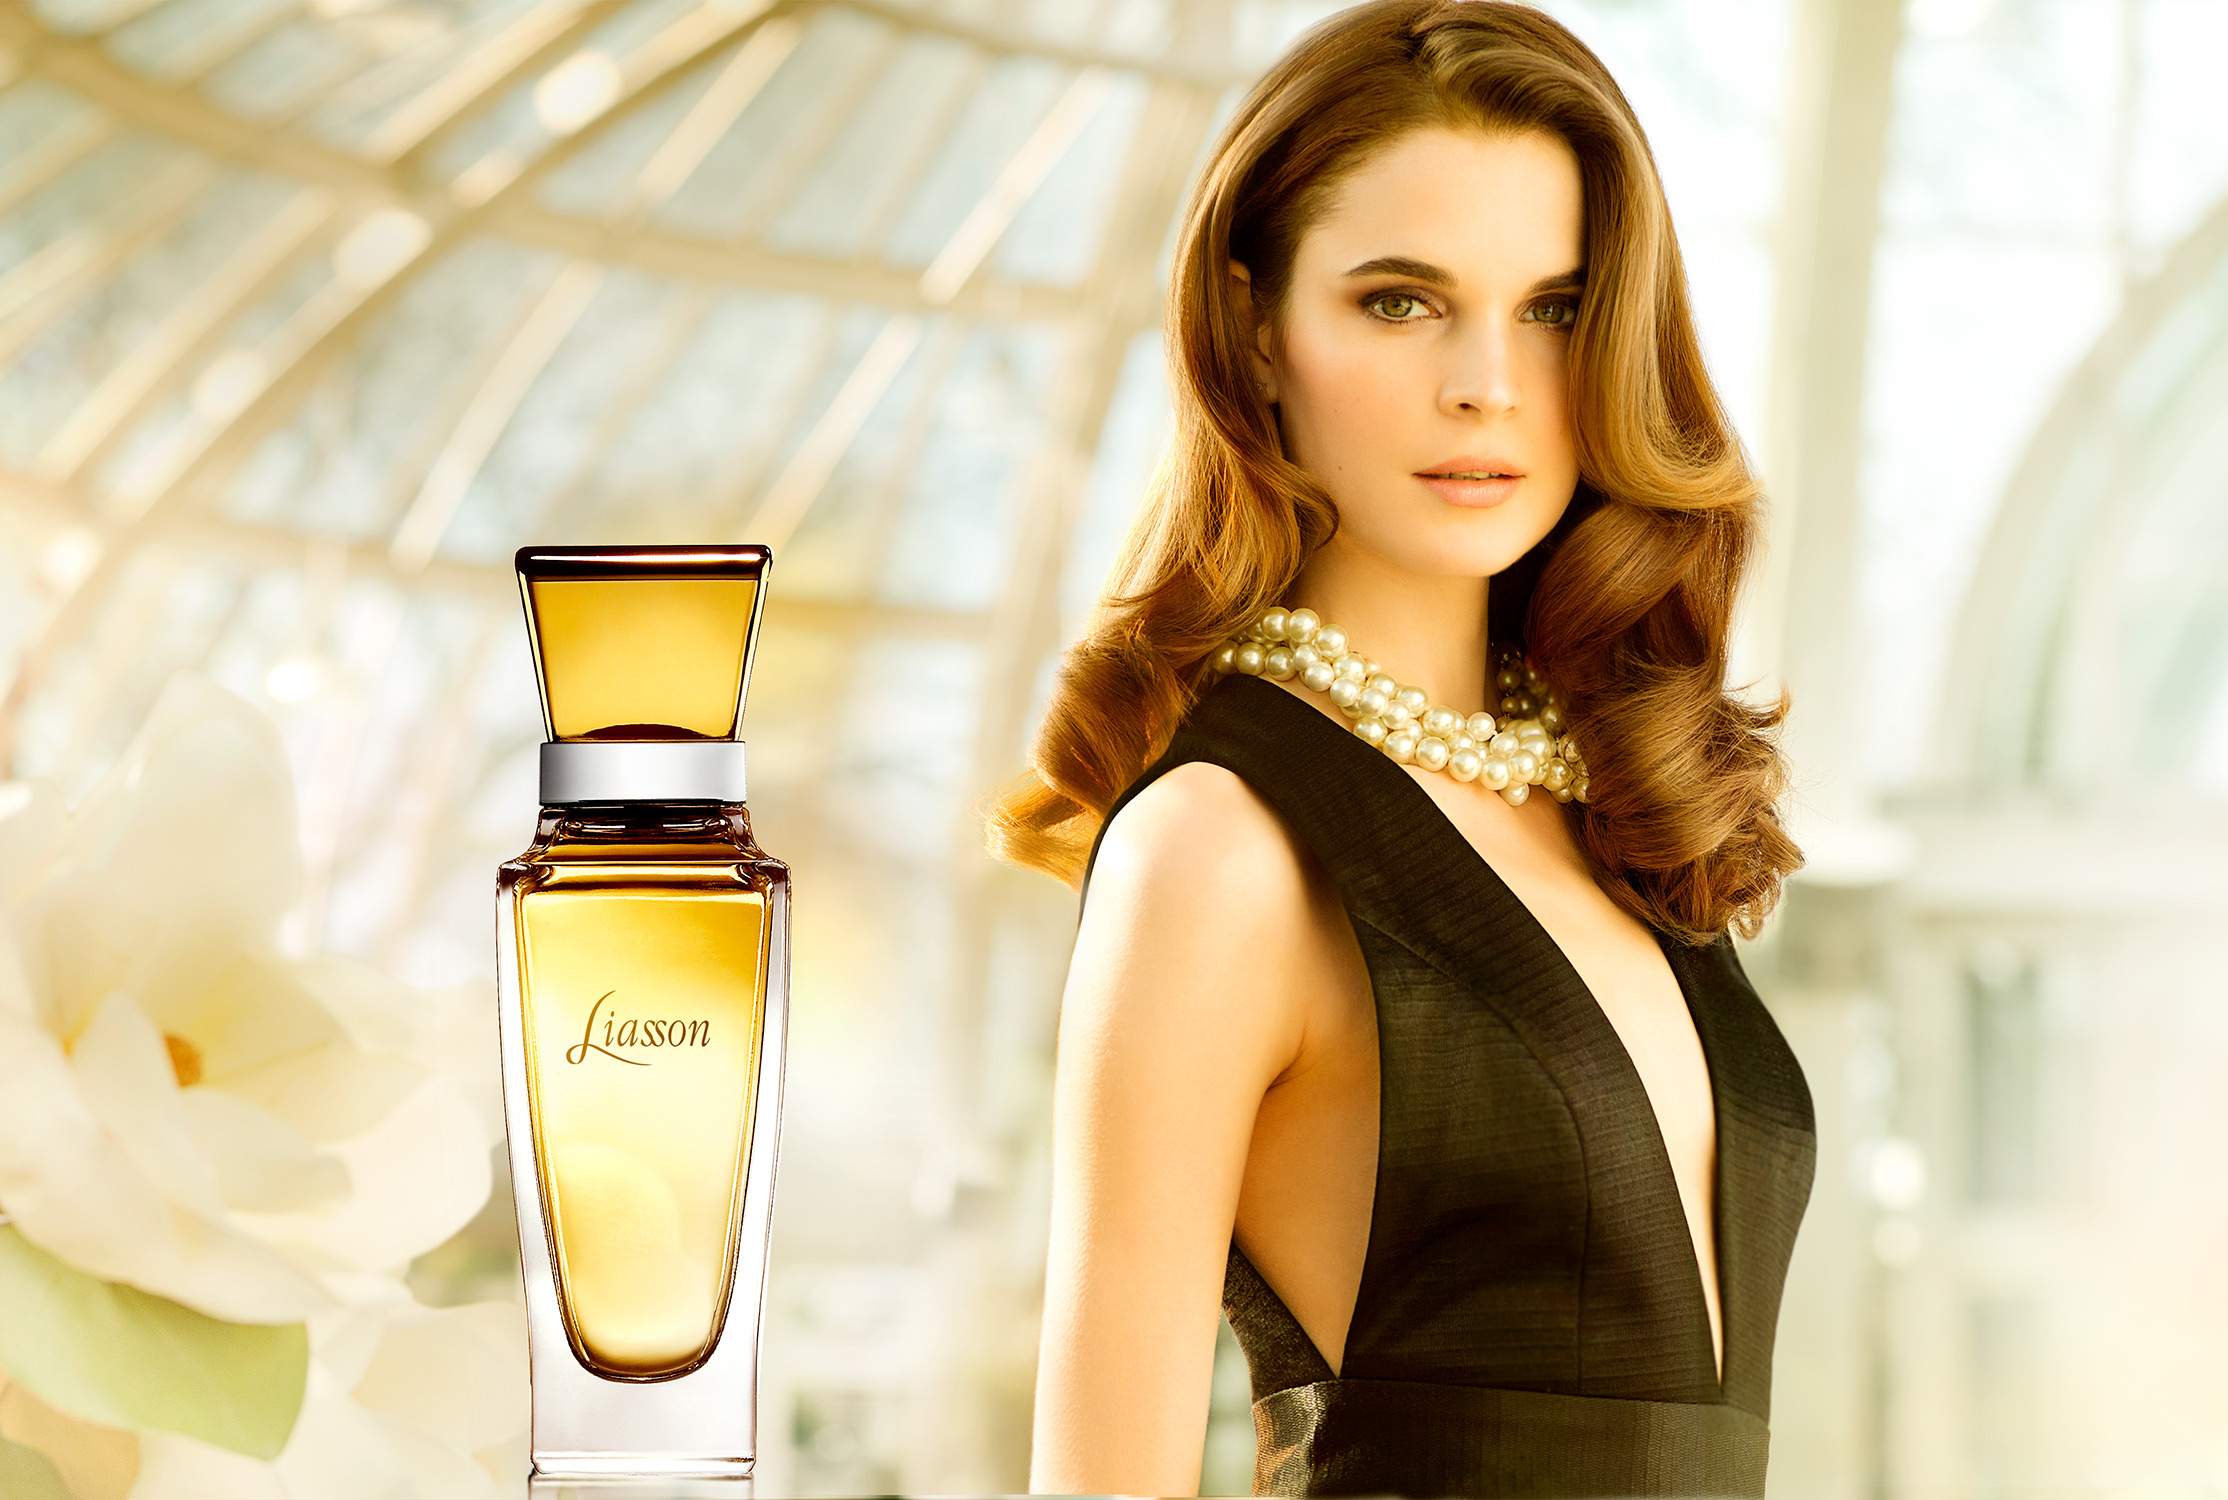 ES_Fragrance_Ads_003